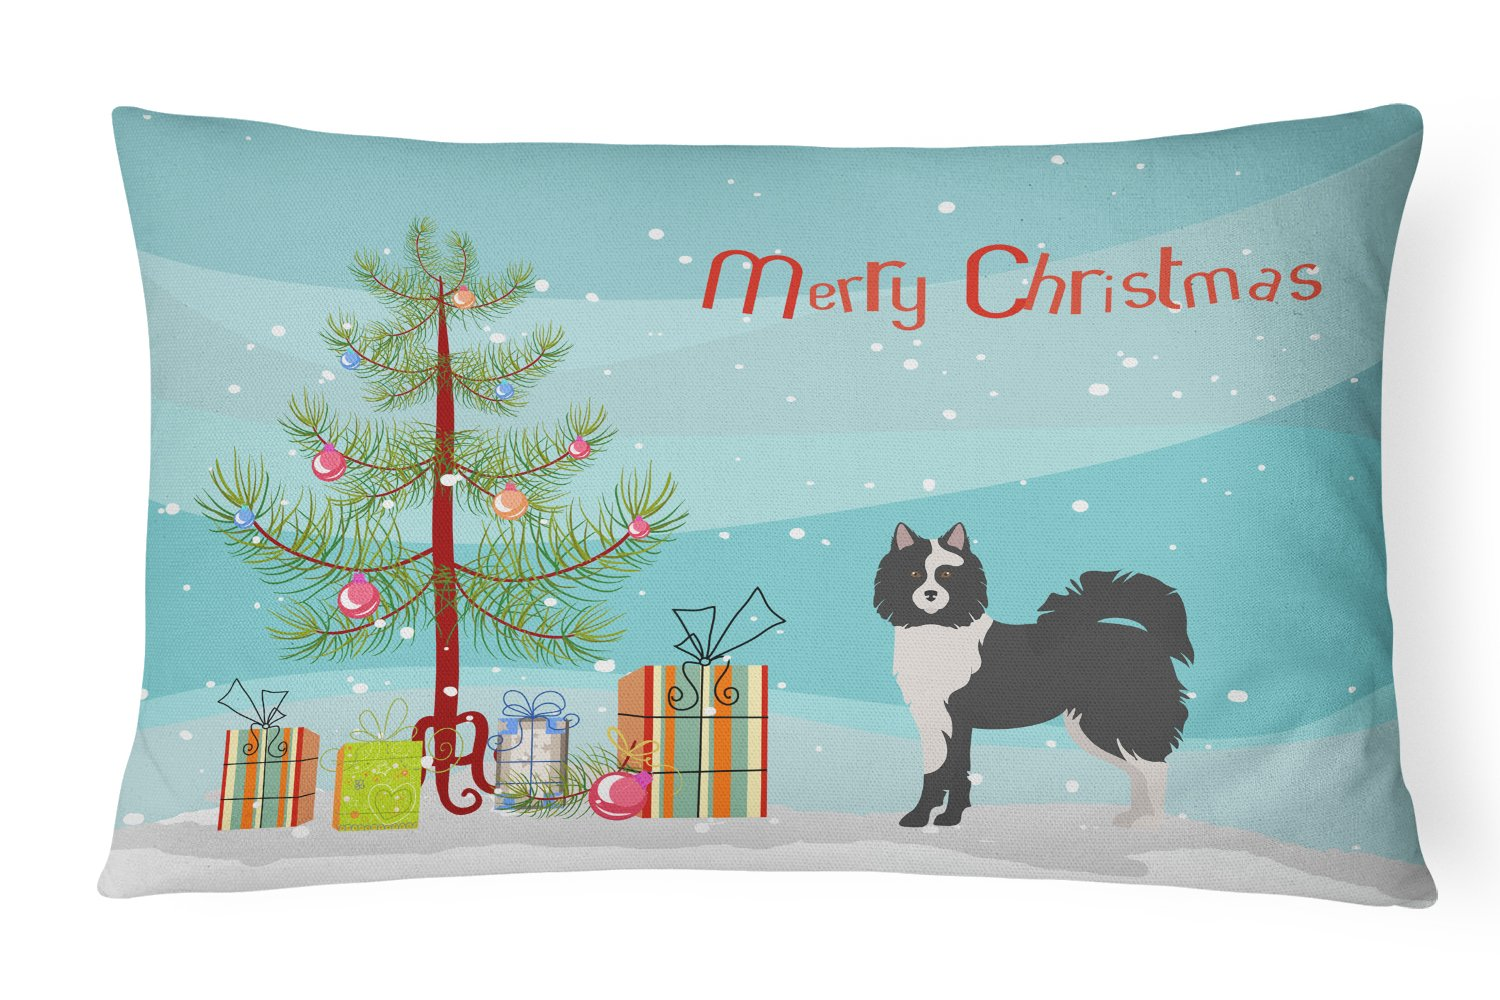 Black and White Elo dog Christmas Tree Canvas Fabric Decorative Pillow CK3452PW1216 by Caroline's Treasures